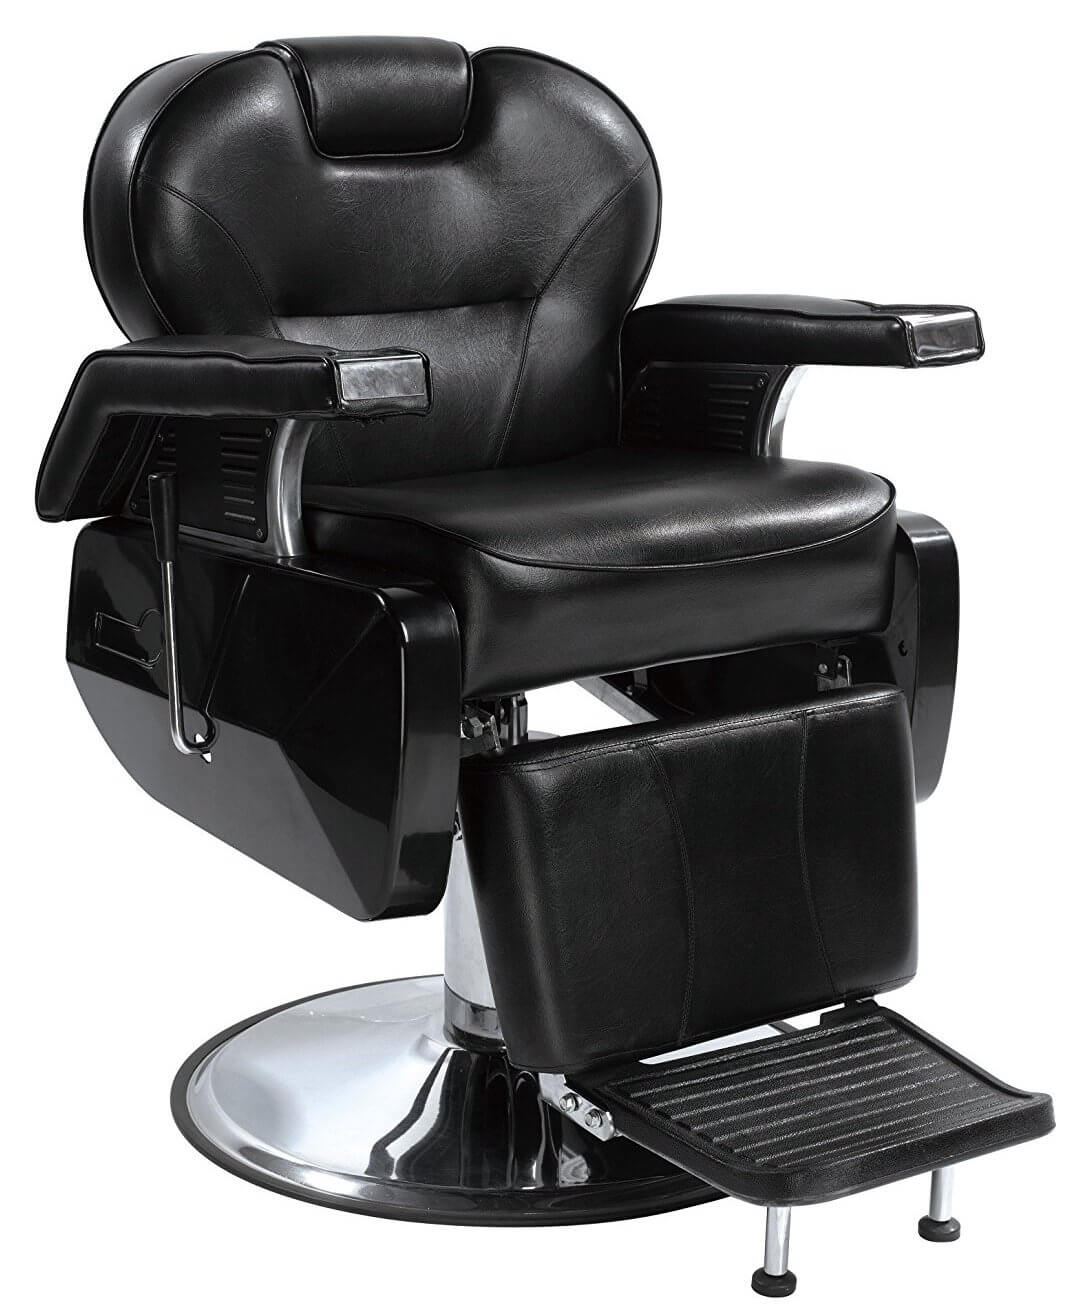 Old School Barber Chair Antique Barbers Chairs Styles Brands And Repros